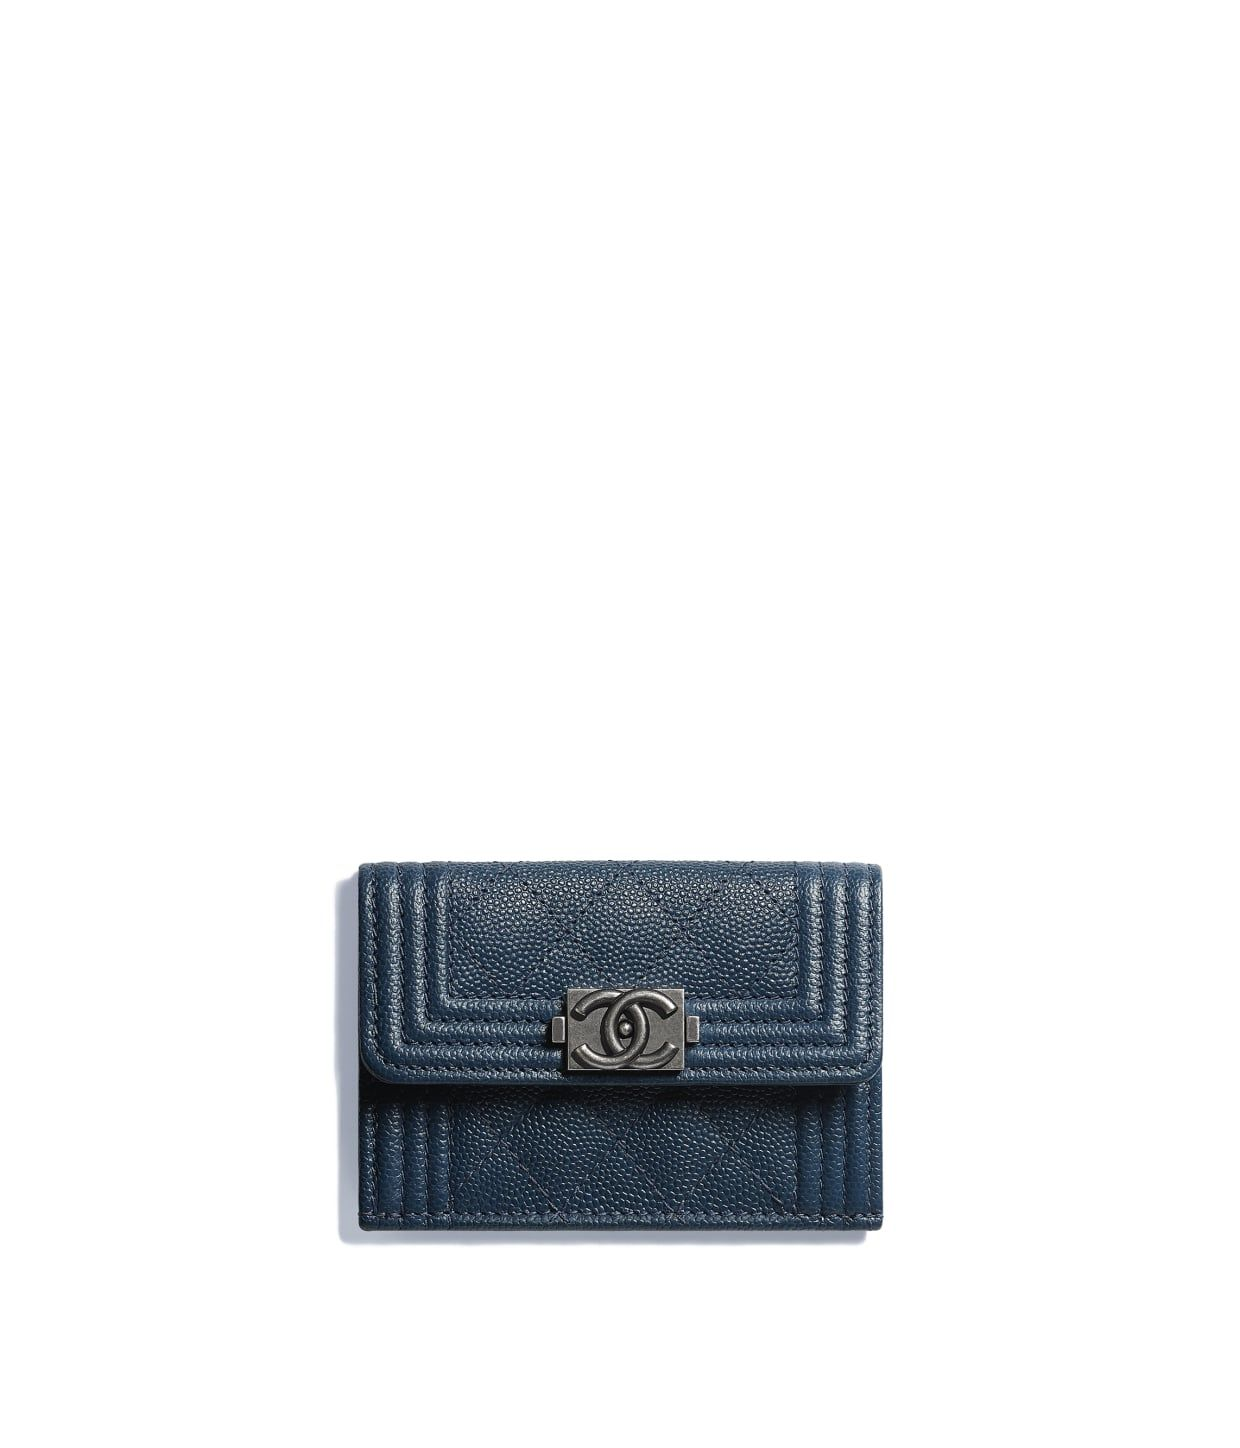 04d855af3ffb Discover the CHANEL Grained Goatskin & Ruthenium-Finish Metal Dark Blue BOY  CHANEL Small Flap Wallet, and explore the artistry and craftsmanship of the  ...